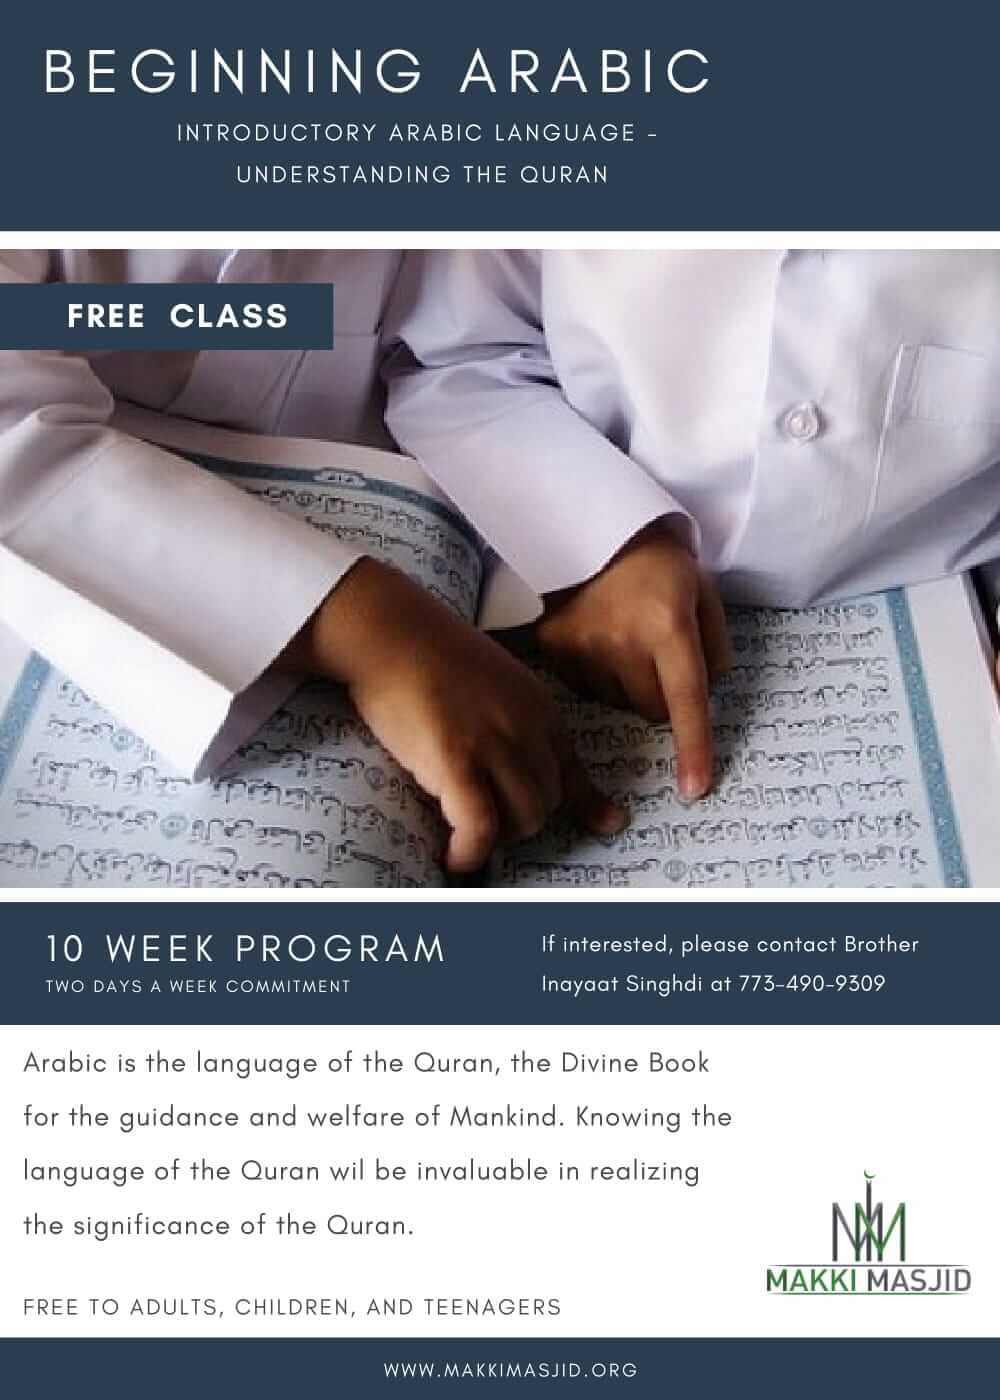 FREE, Beginners Arabic Course for everyone!